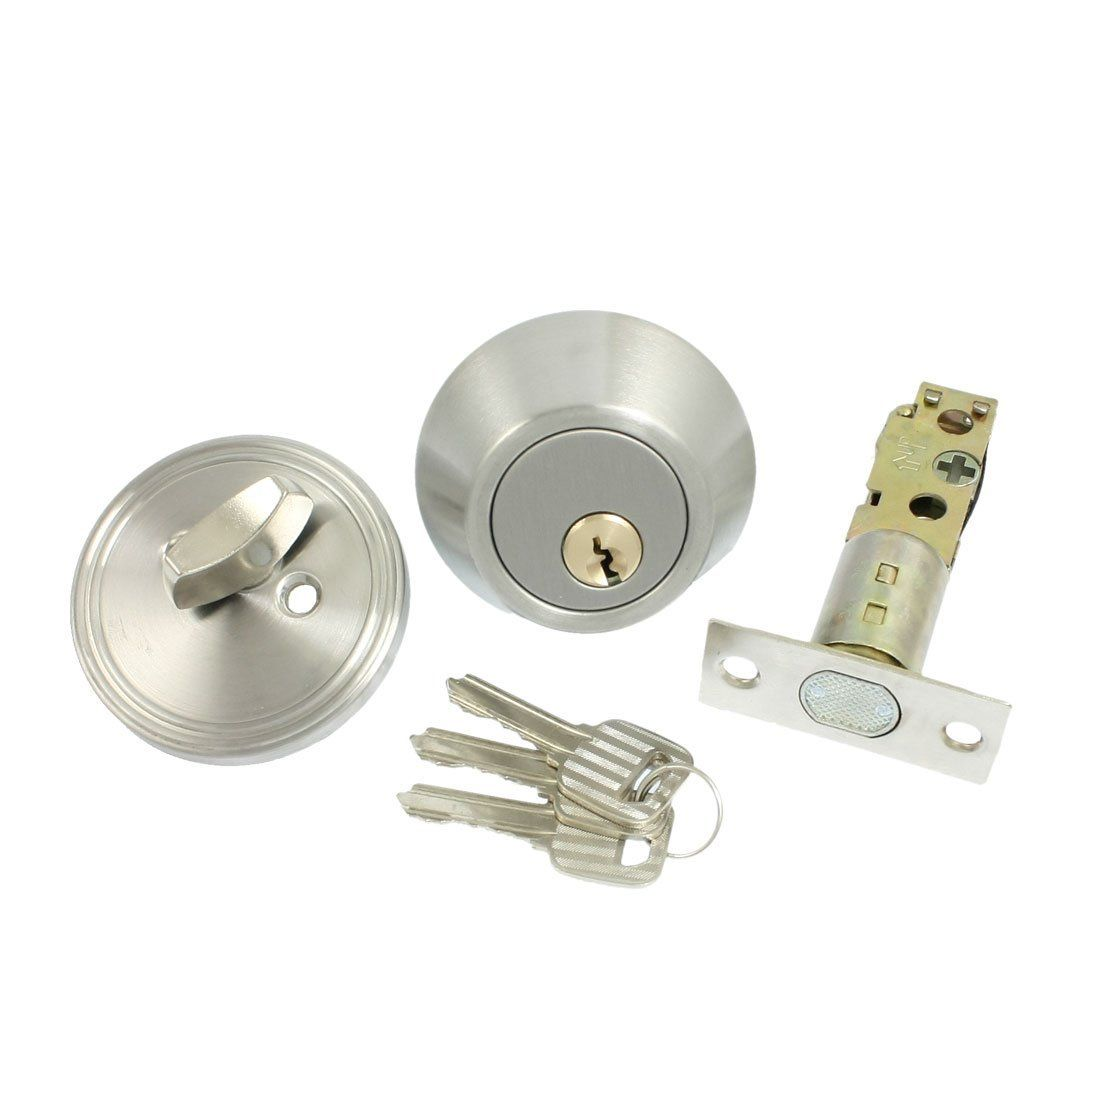 THGS Home Door Locking Security Single Cylinder Deadbolt Lock Silver Tone